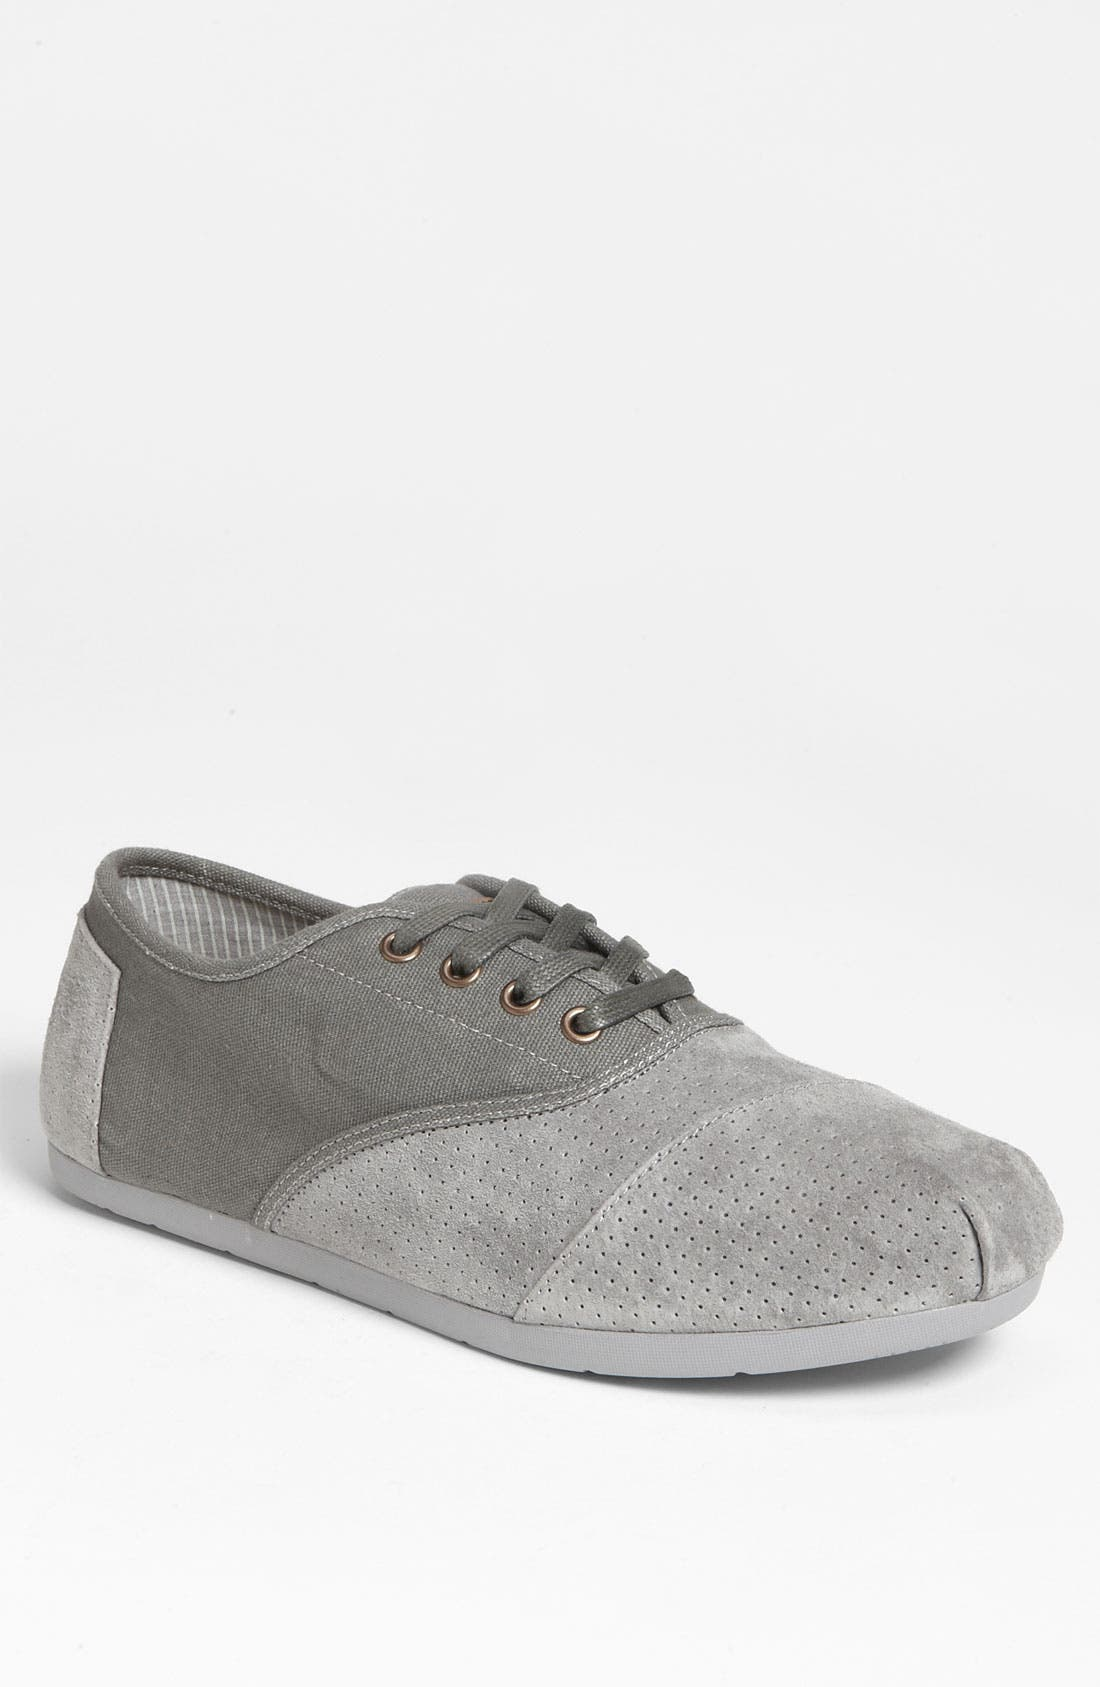 Alternate Image 1 Selected - TOMS 'Cordones - Marquez' Sneaker (Men)